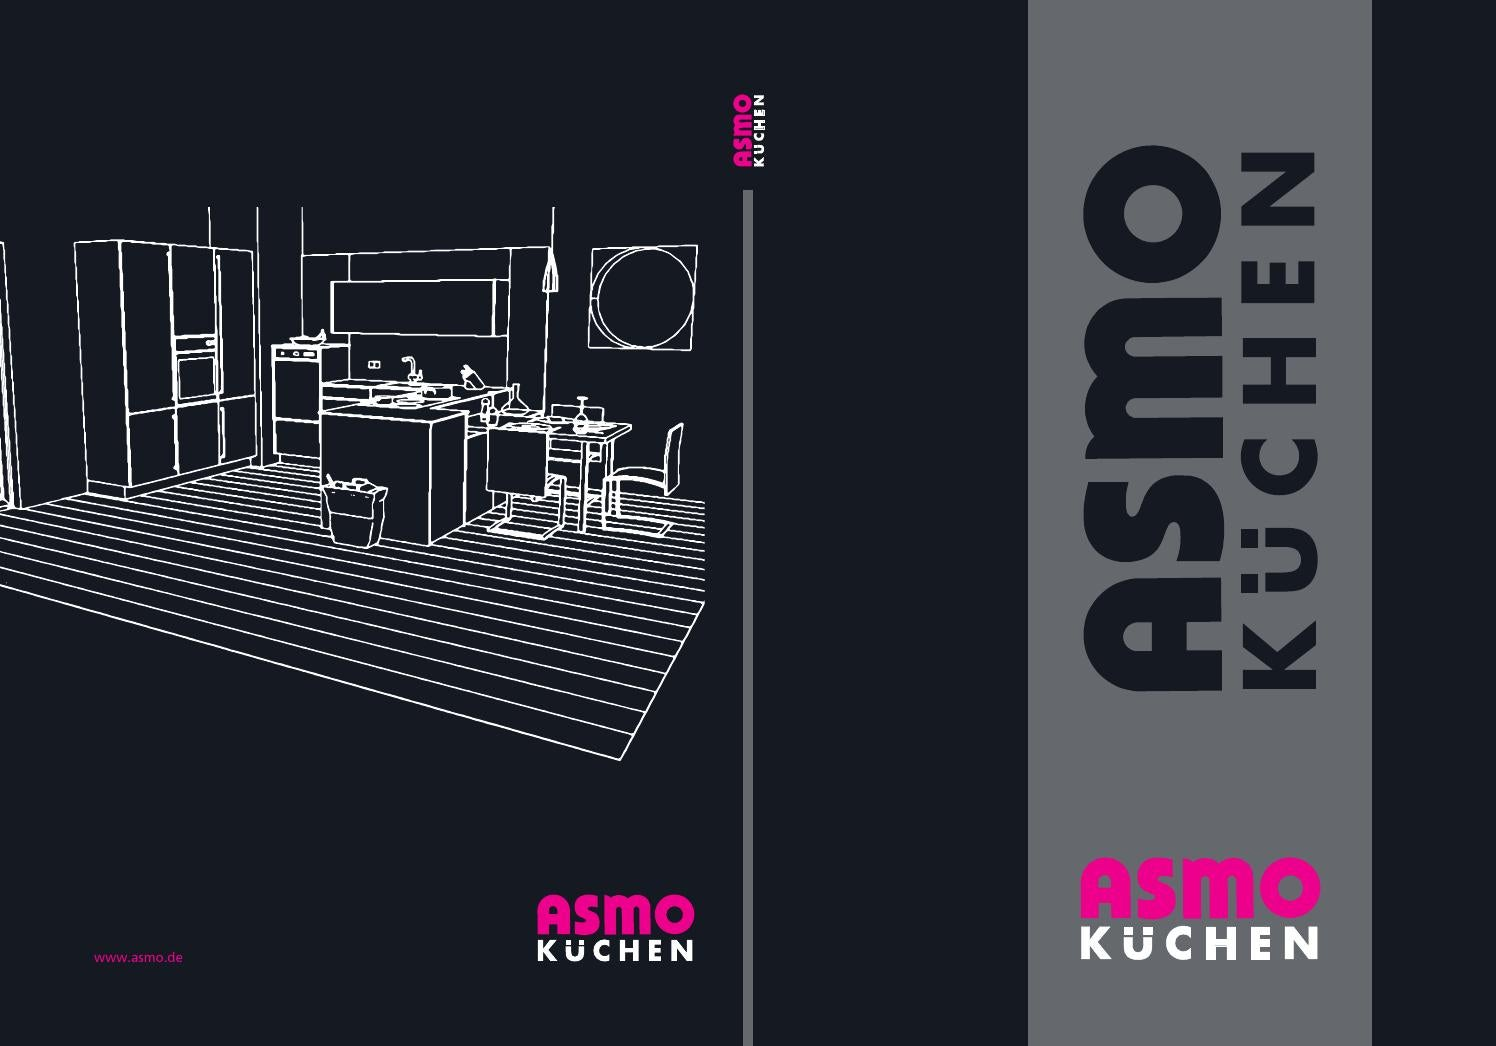 asmo k chen 2015 by steffen kley issuu. Black Bedroom Furniture Sets. Home Design Ideas